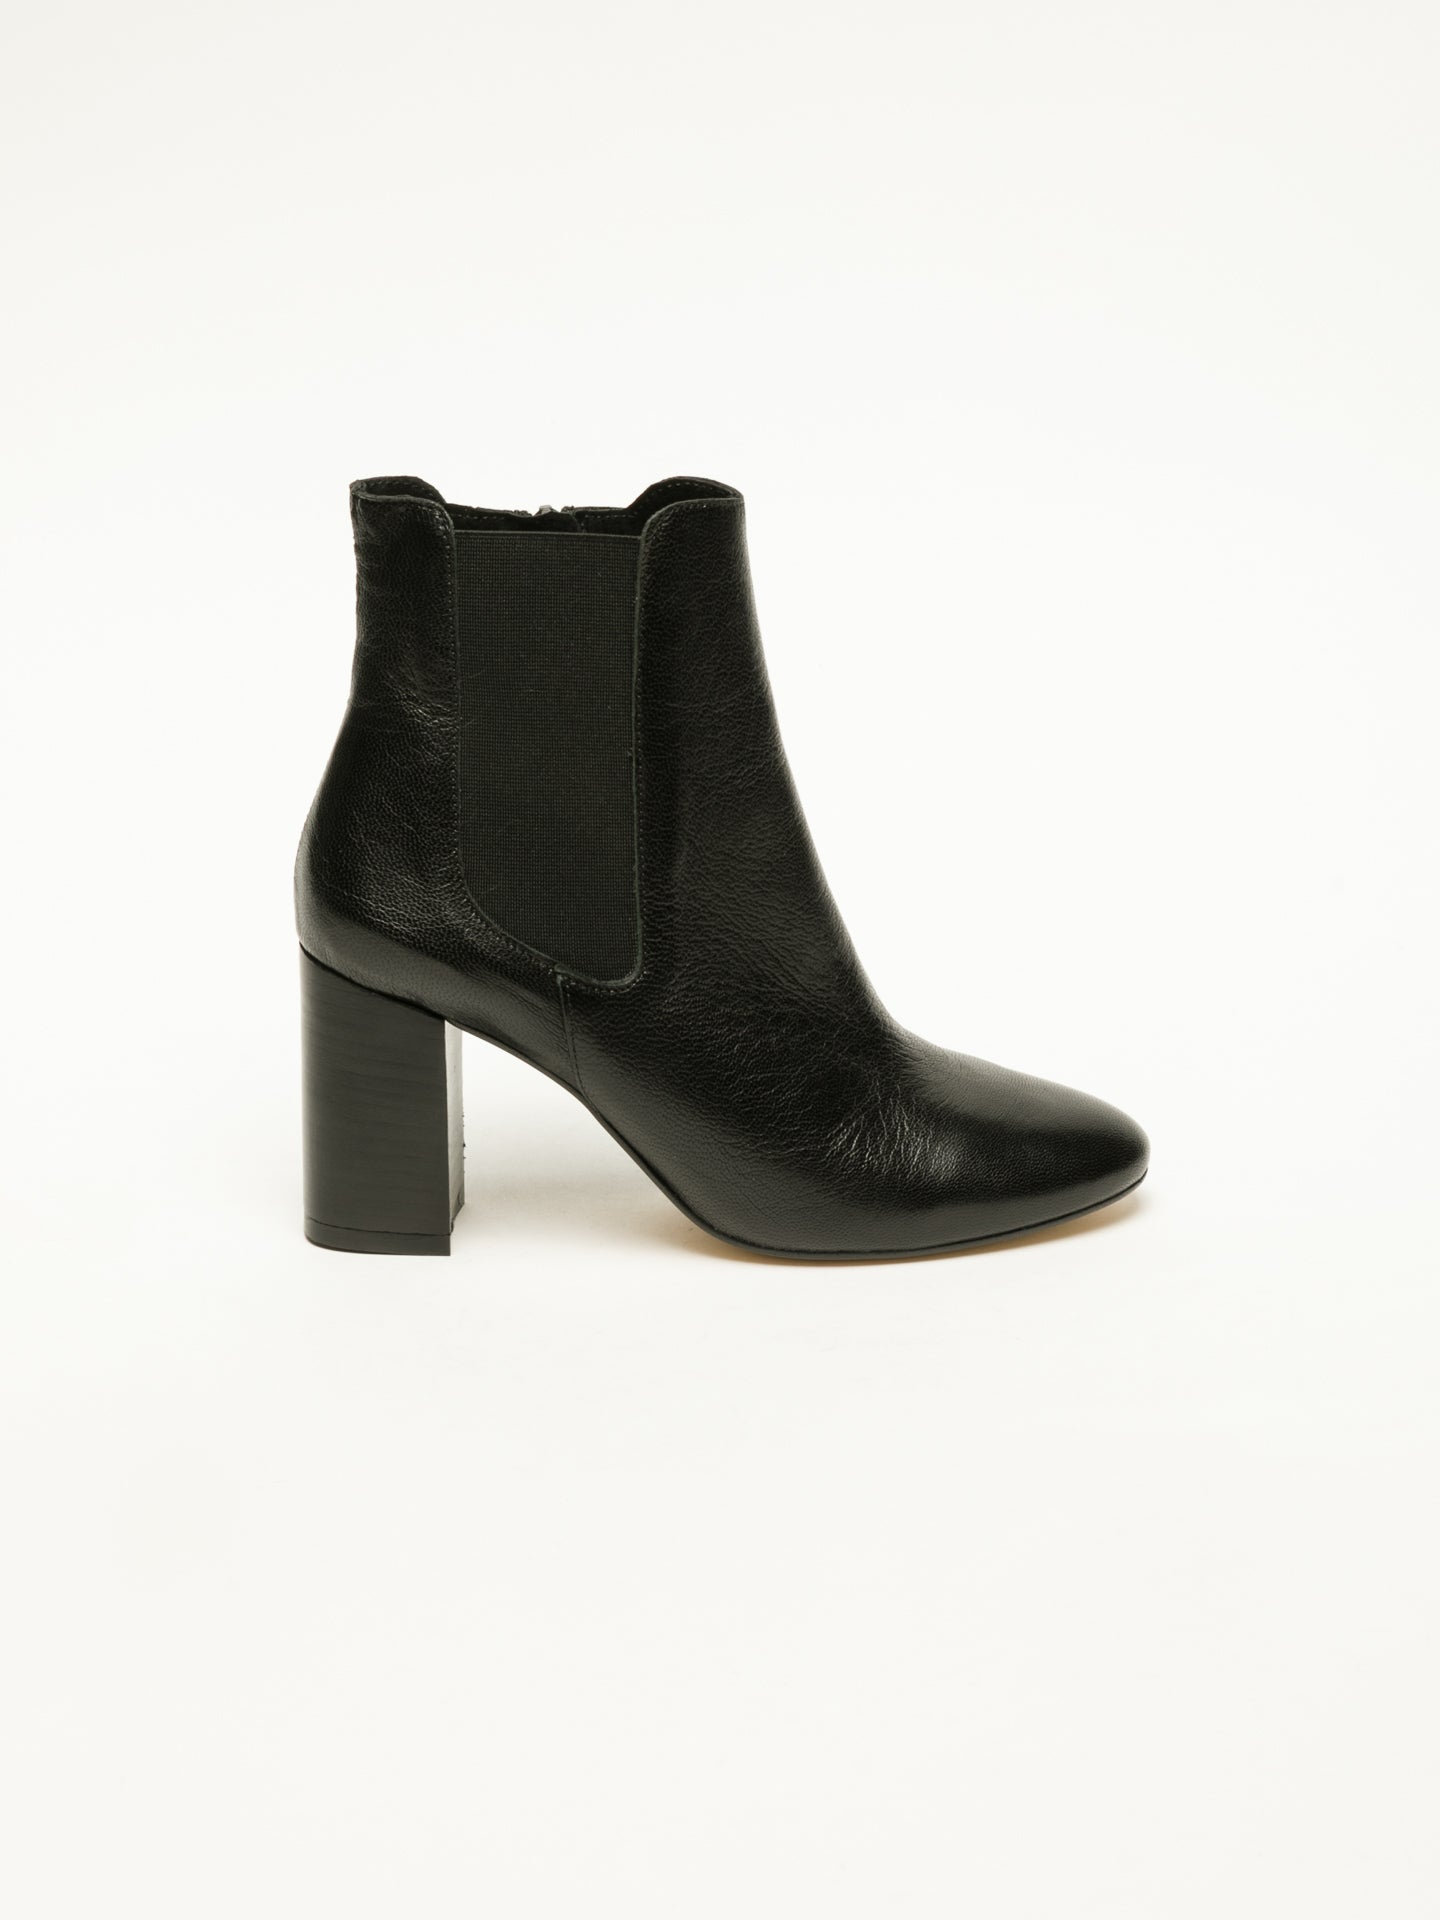 Foreva Black Elasticated Ankle Boots